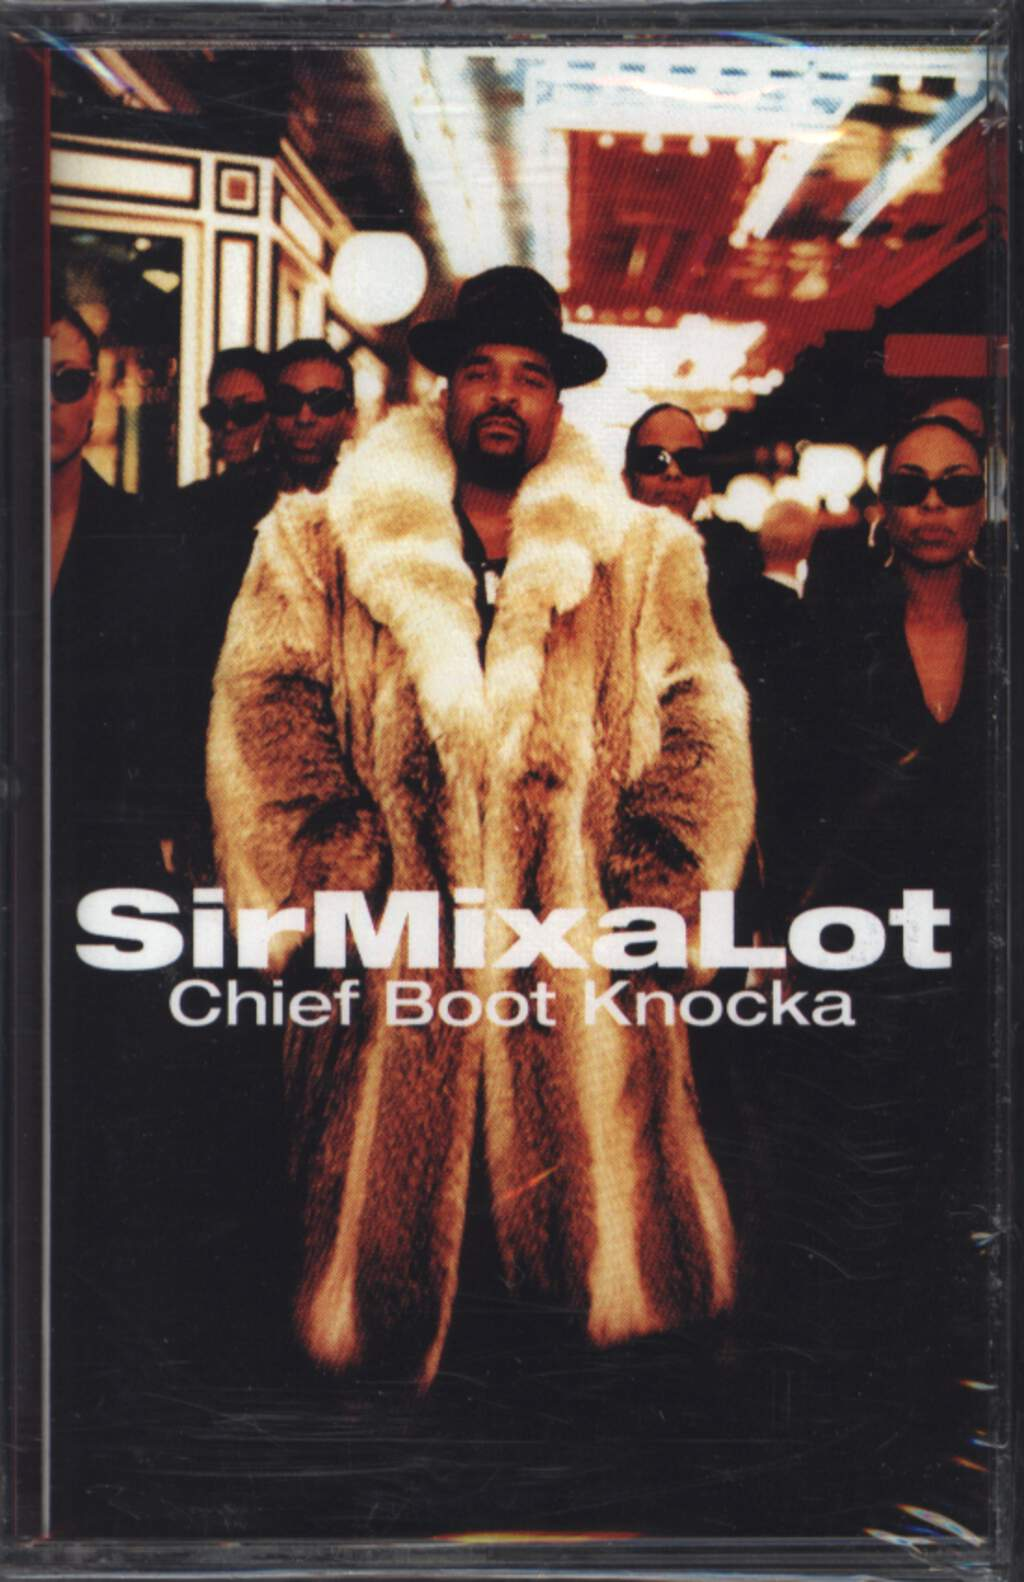 Sir Mix a Lot: Chief Boot Knocka, Compact Cassette